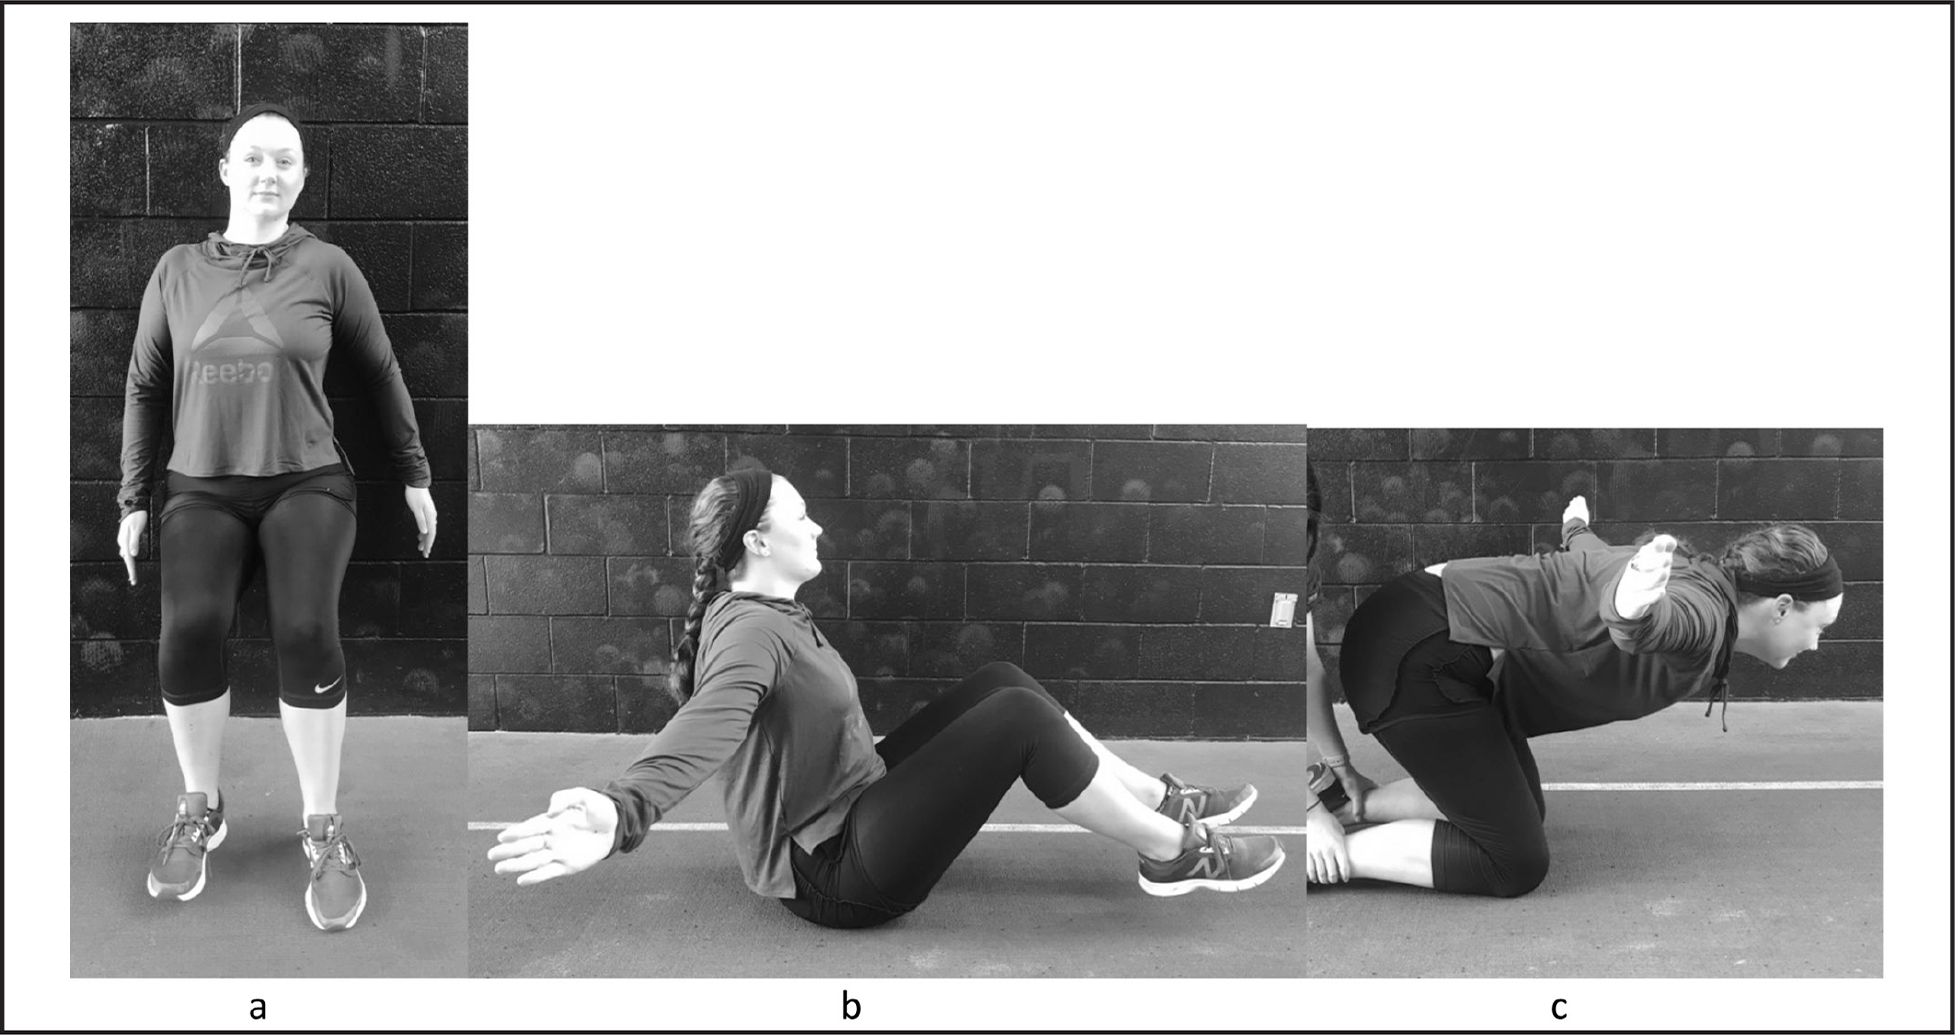 Lumbopelvic-hip endurance screening tests. (A) Unilateral wall sit hold test position, (B) trunk flexion hold test position, and (C) horizontal trunk hold test position.